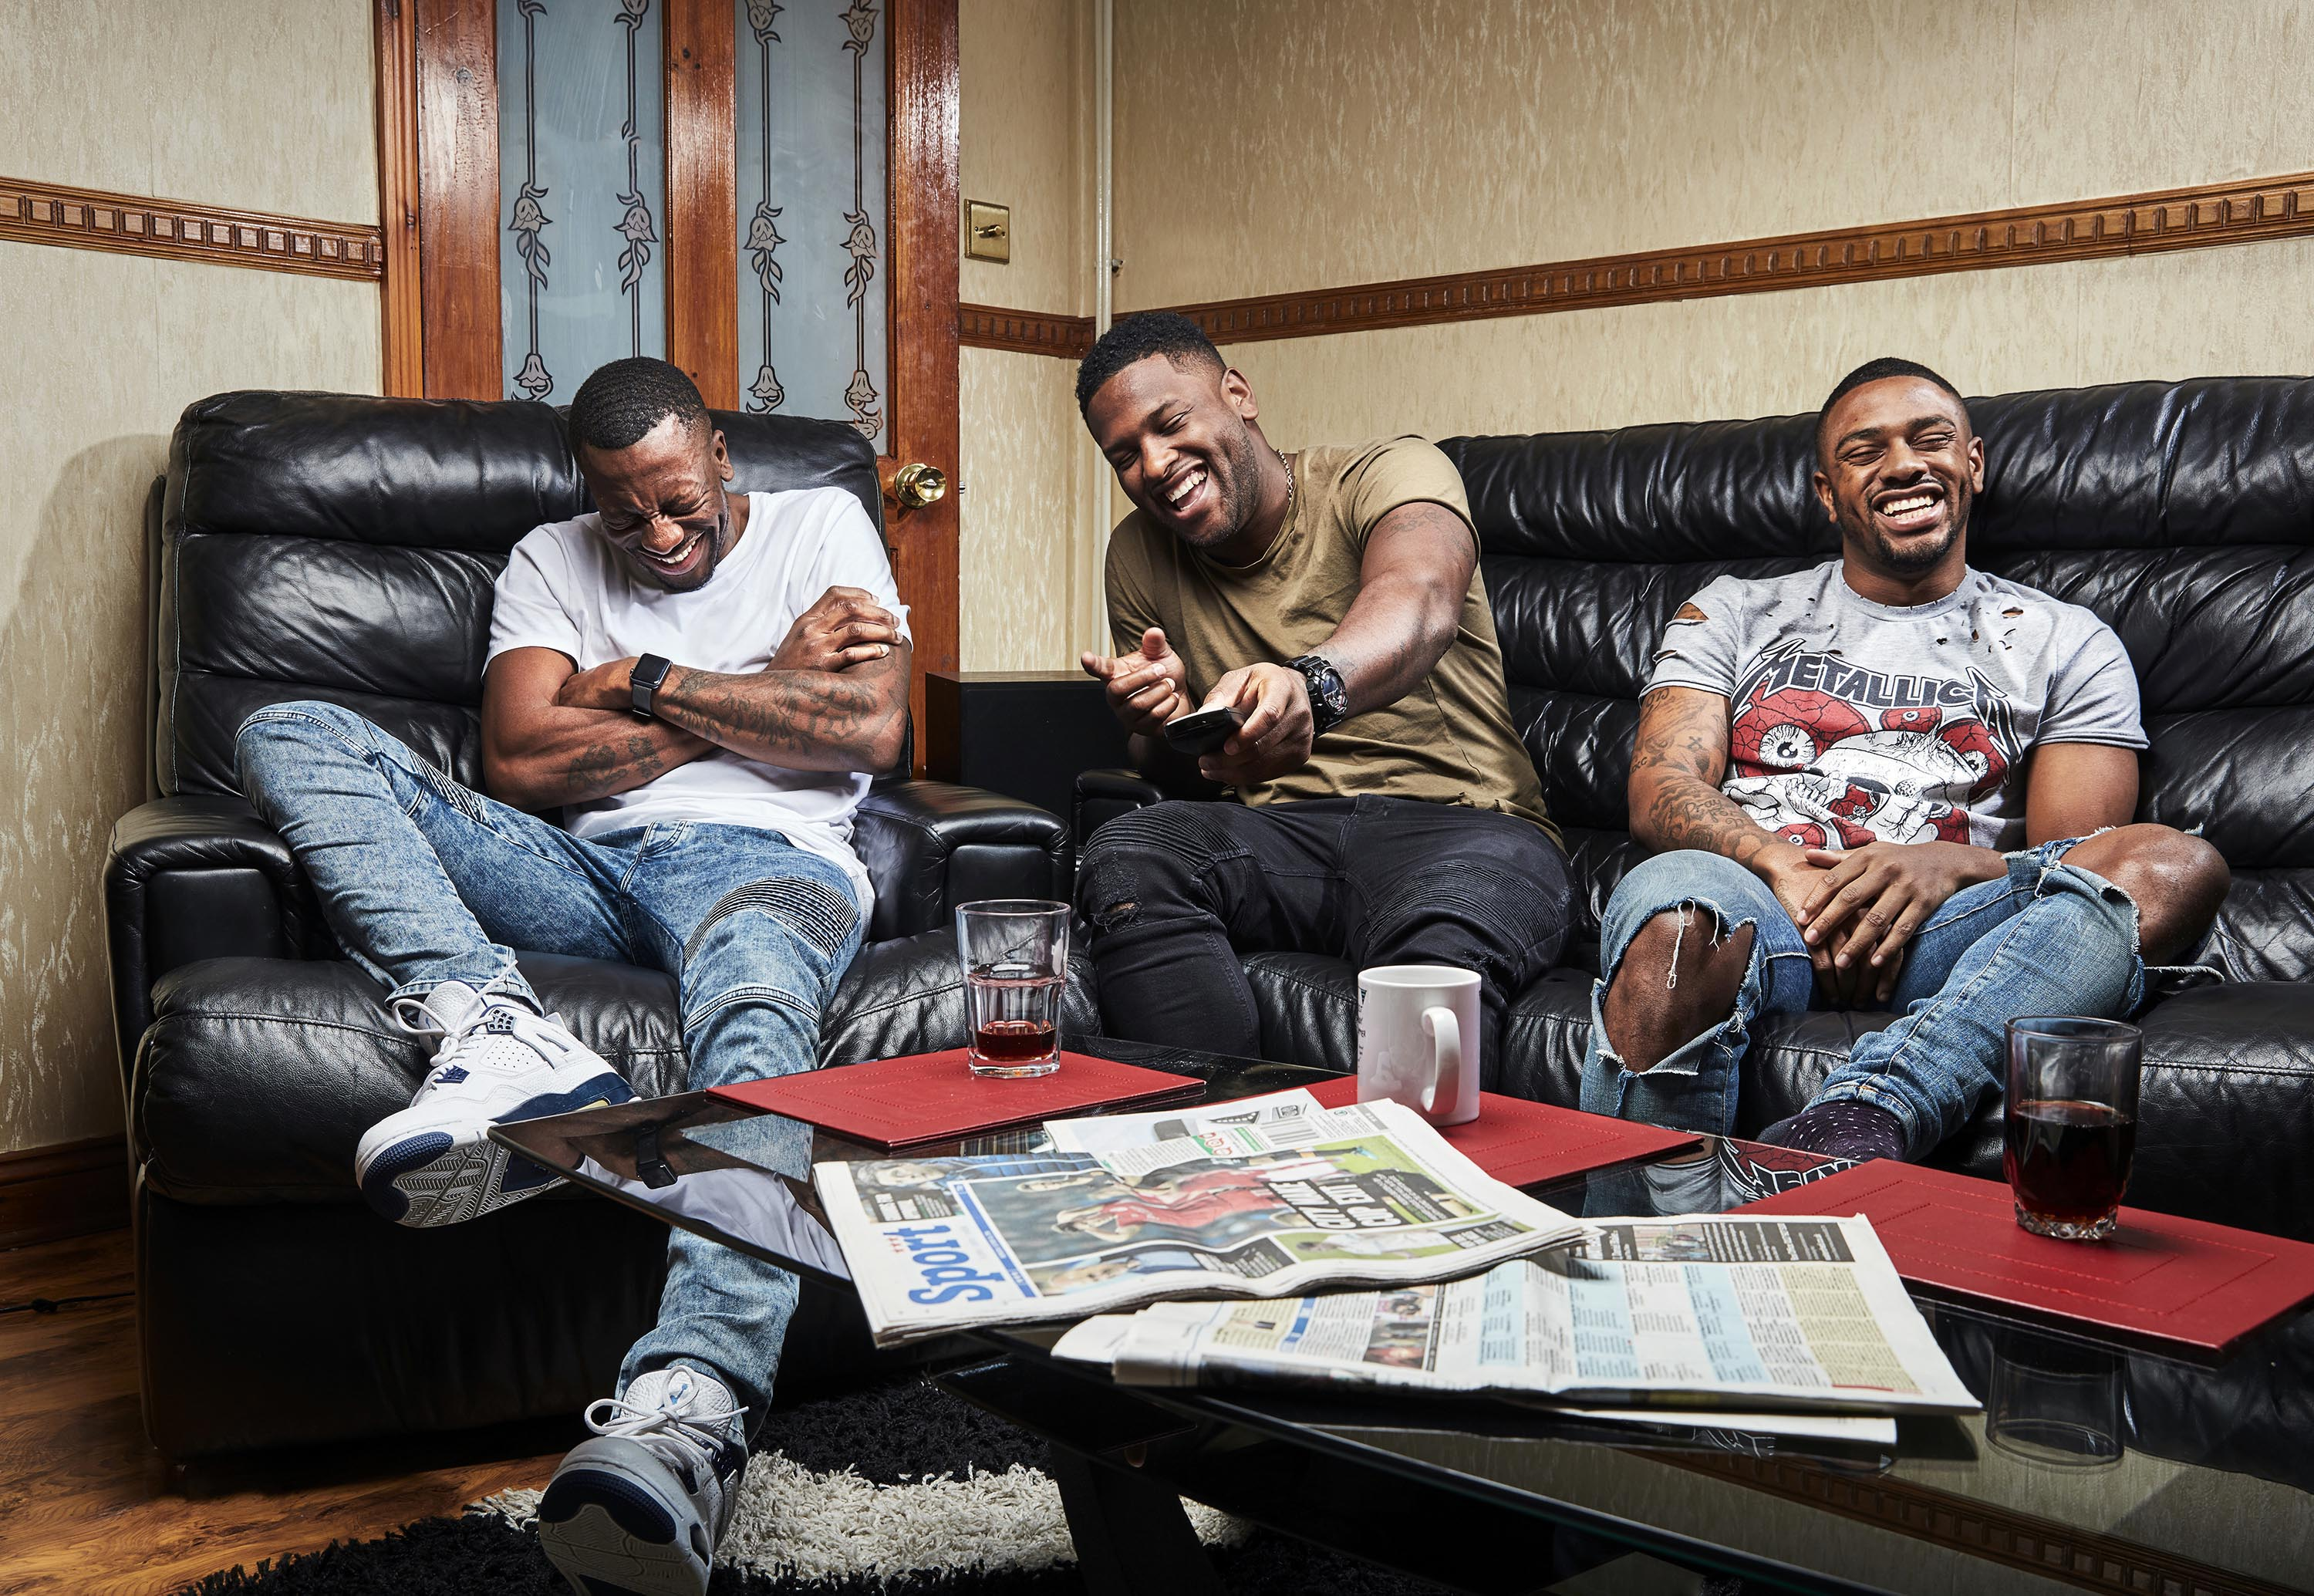 How Is 'Gogglebox' Made?